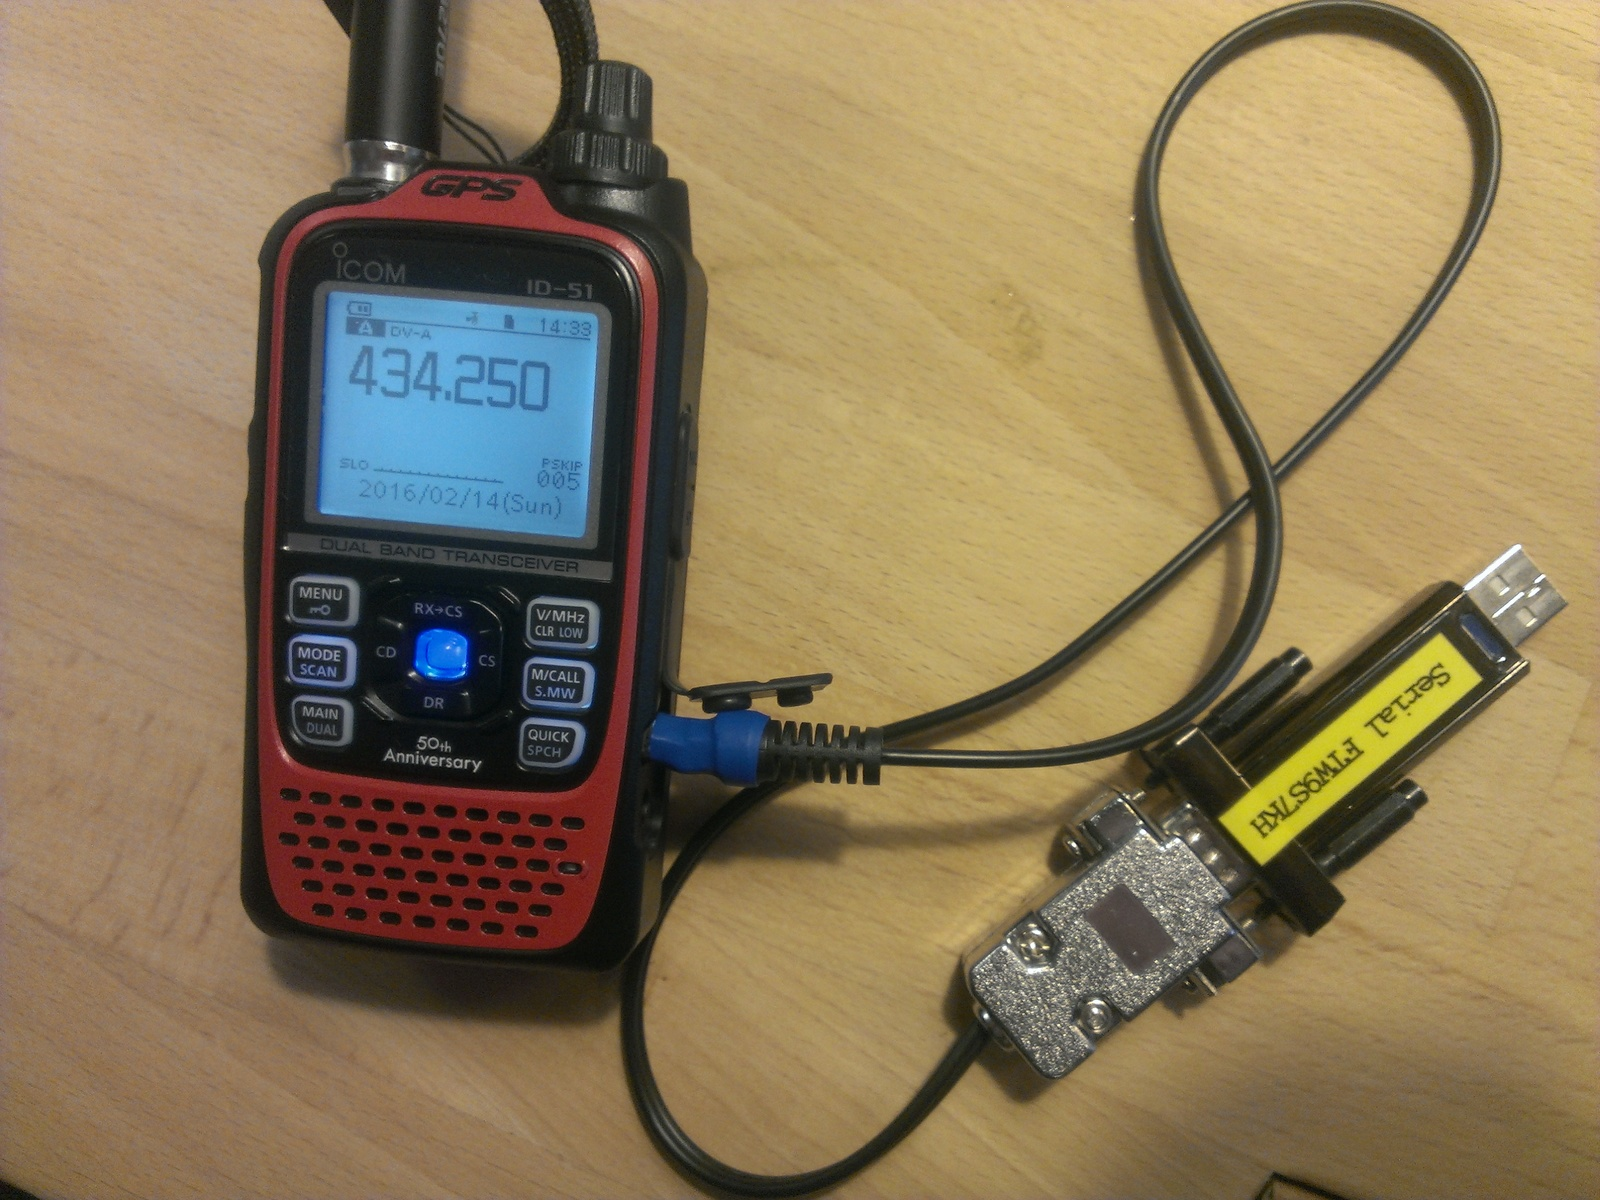 ICOM ID-51 with selfmade data cableclose. Excerpt from service manualclose